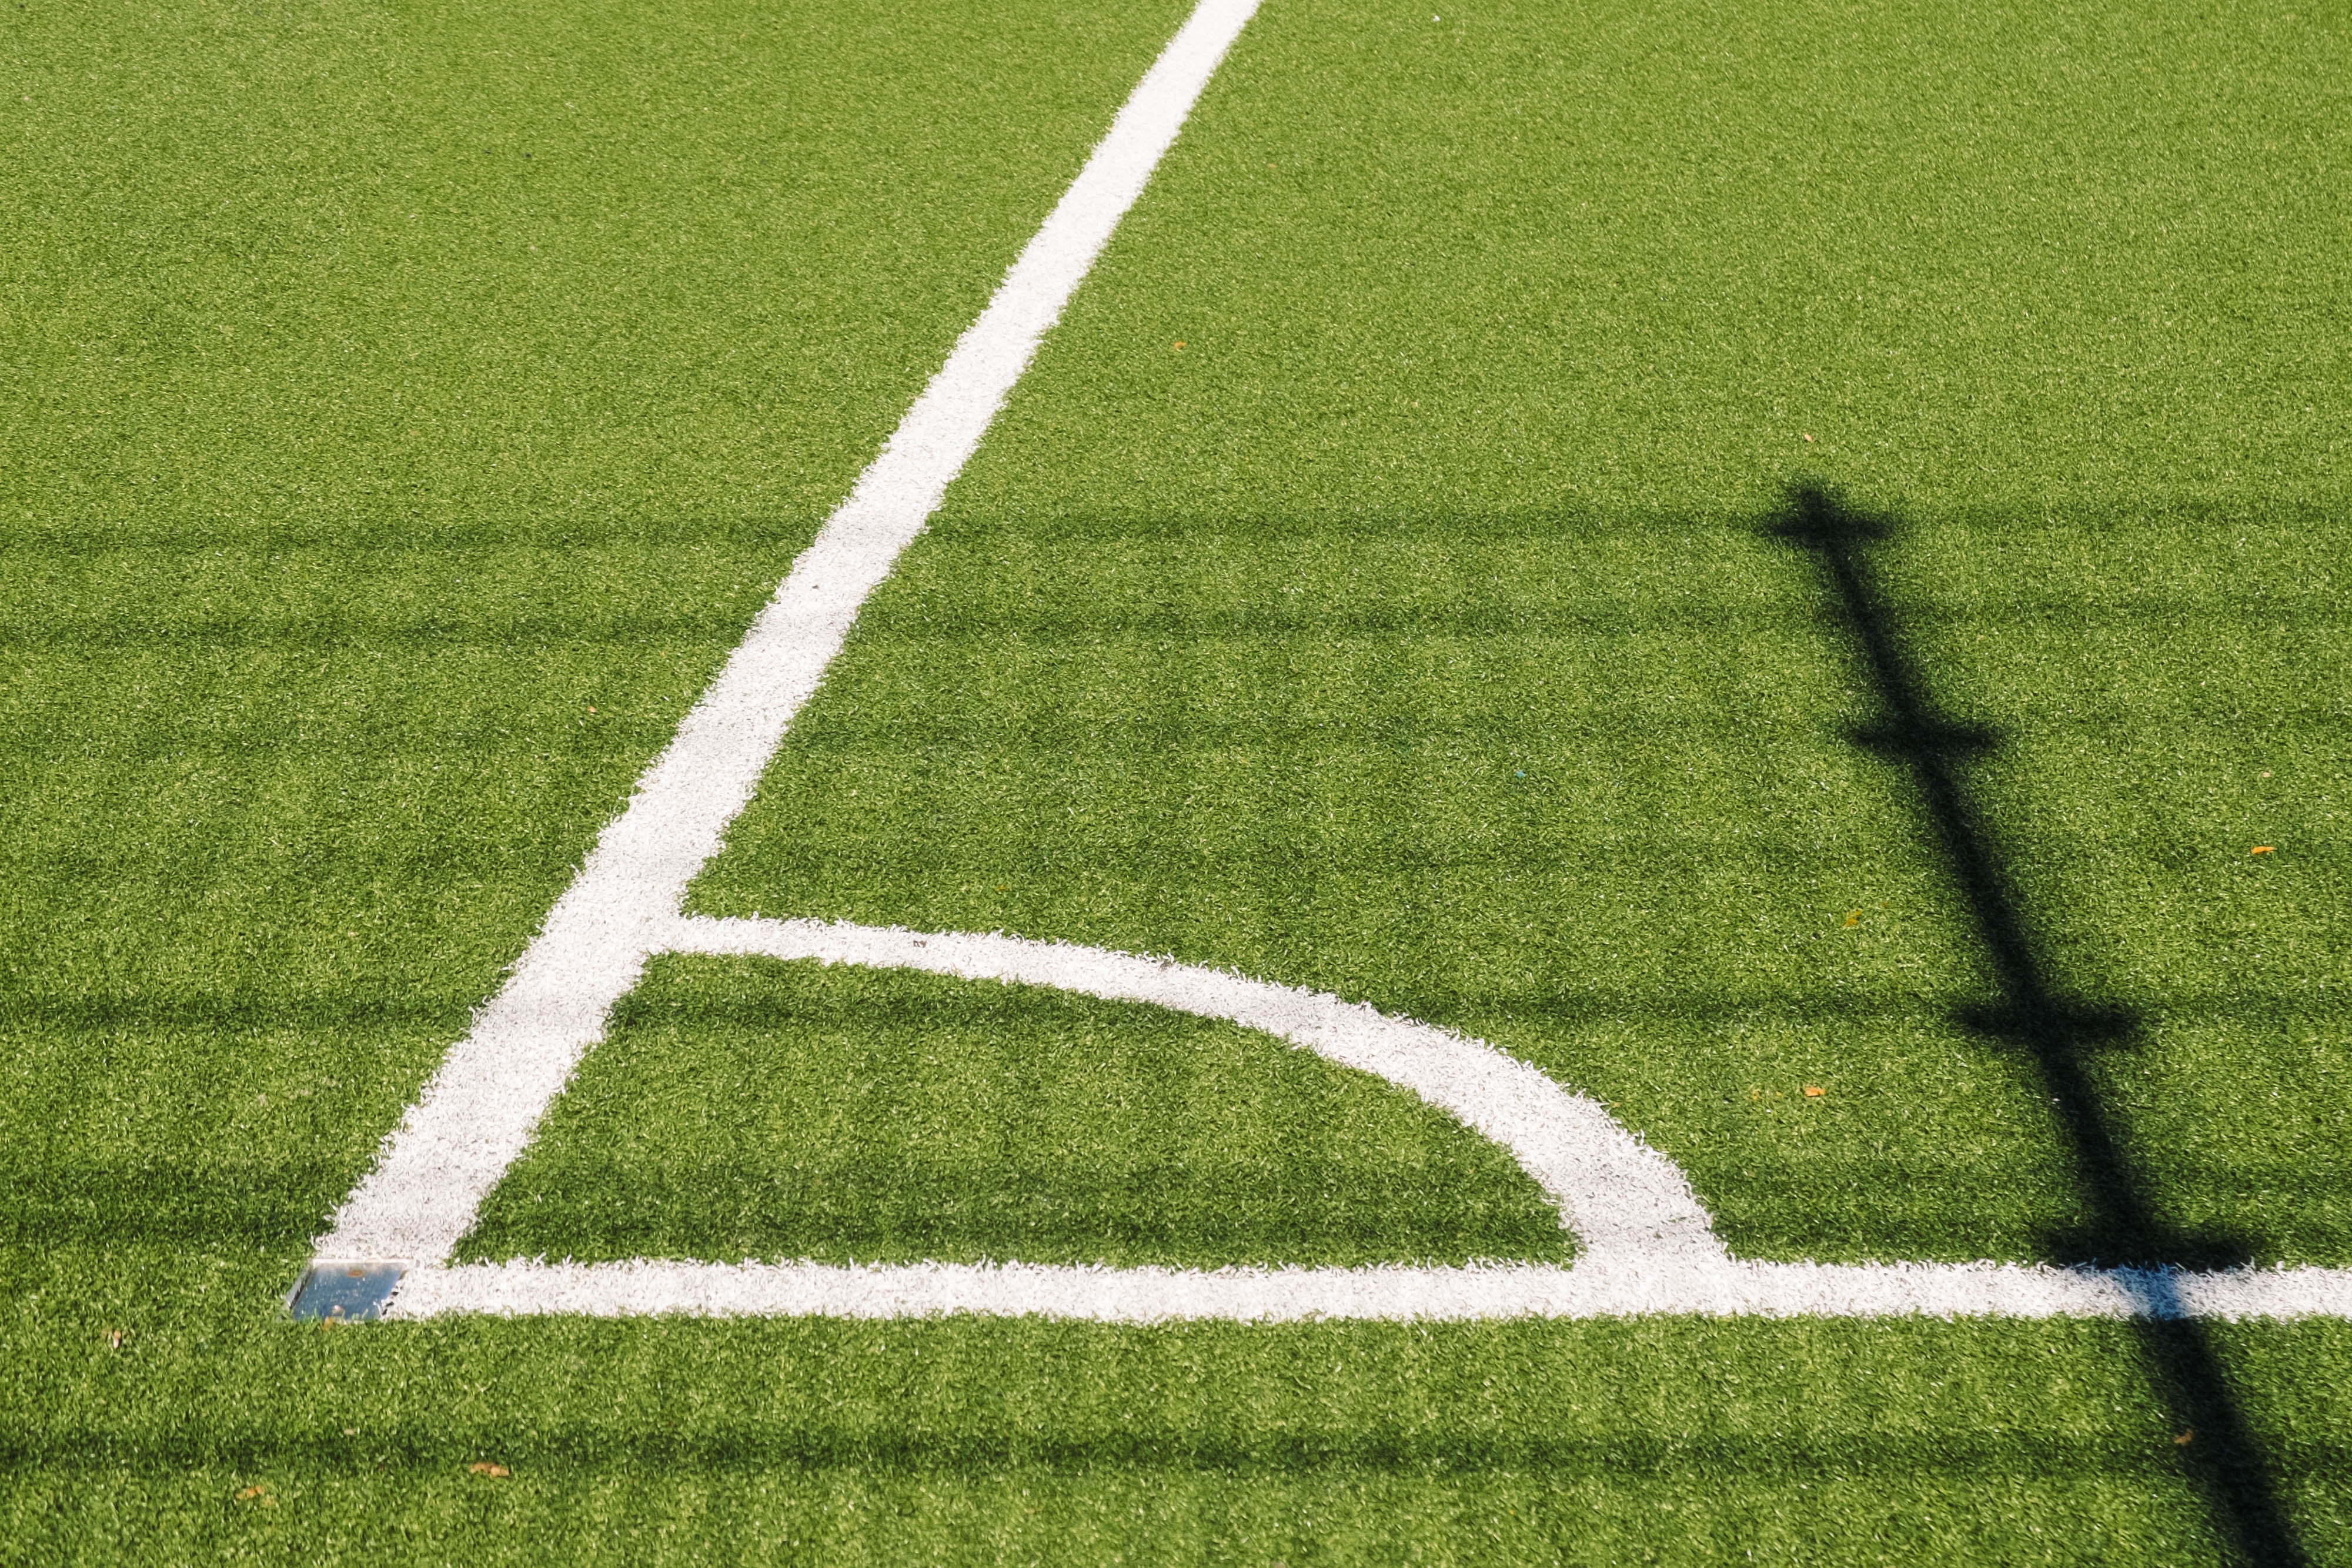 Corner of soccer field with white lines in an angle on turf